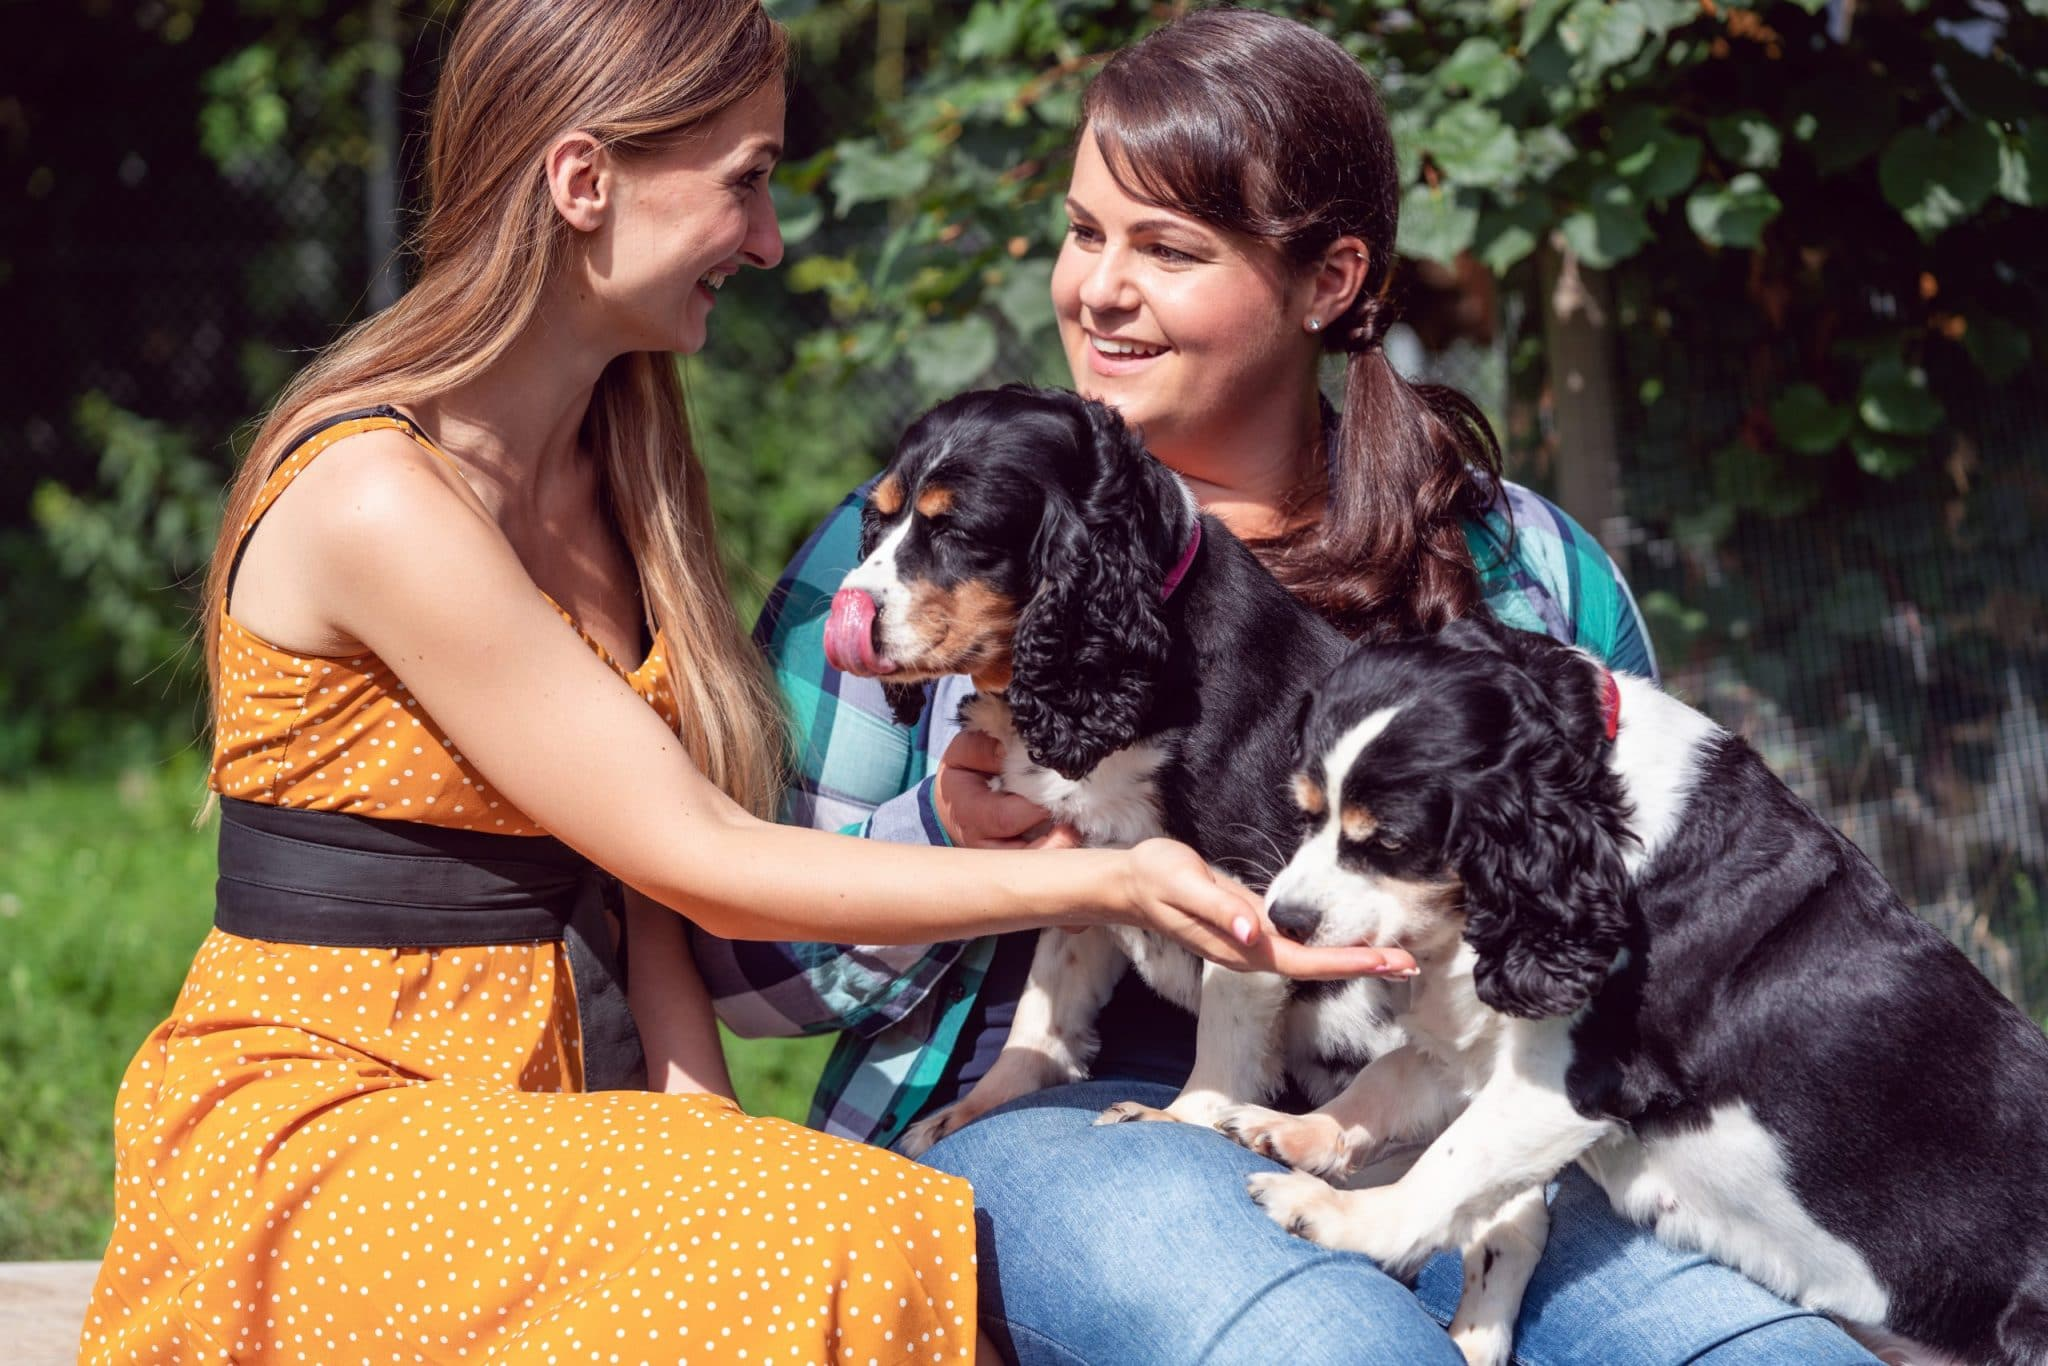 How To Socialize Your Dog With Other Dogs And Humans